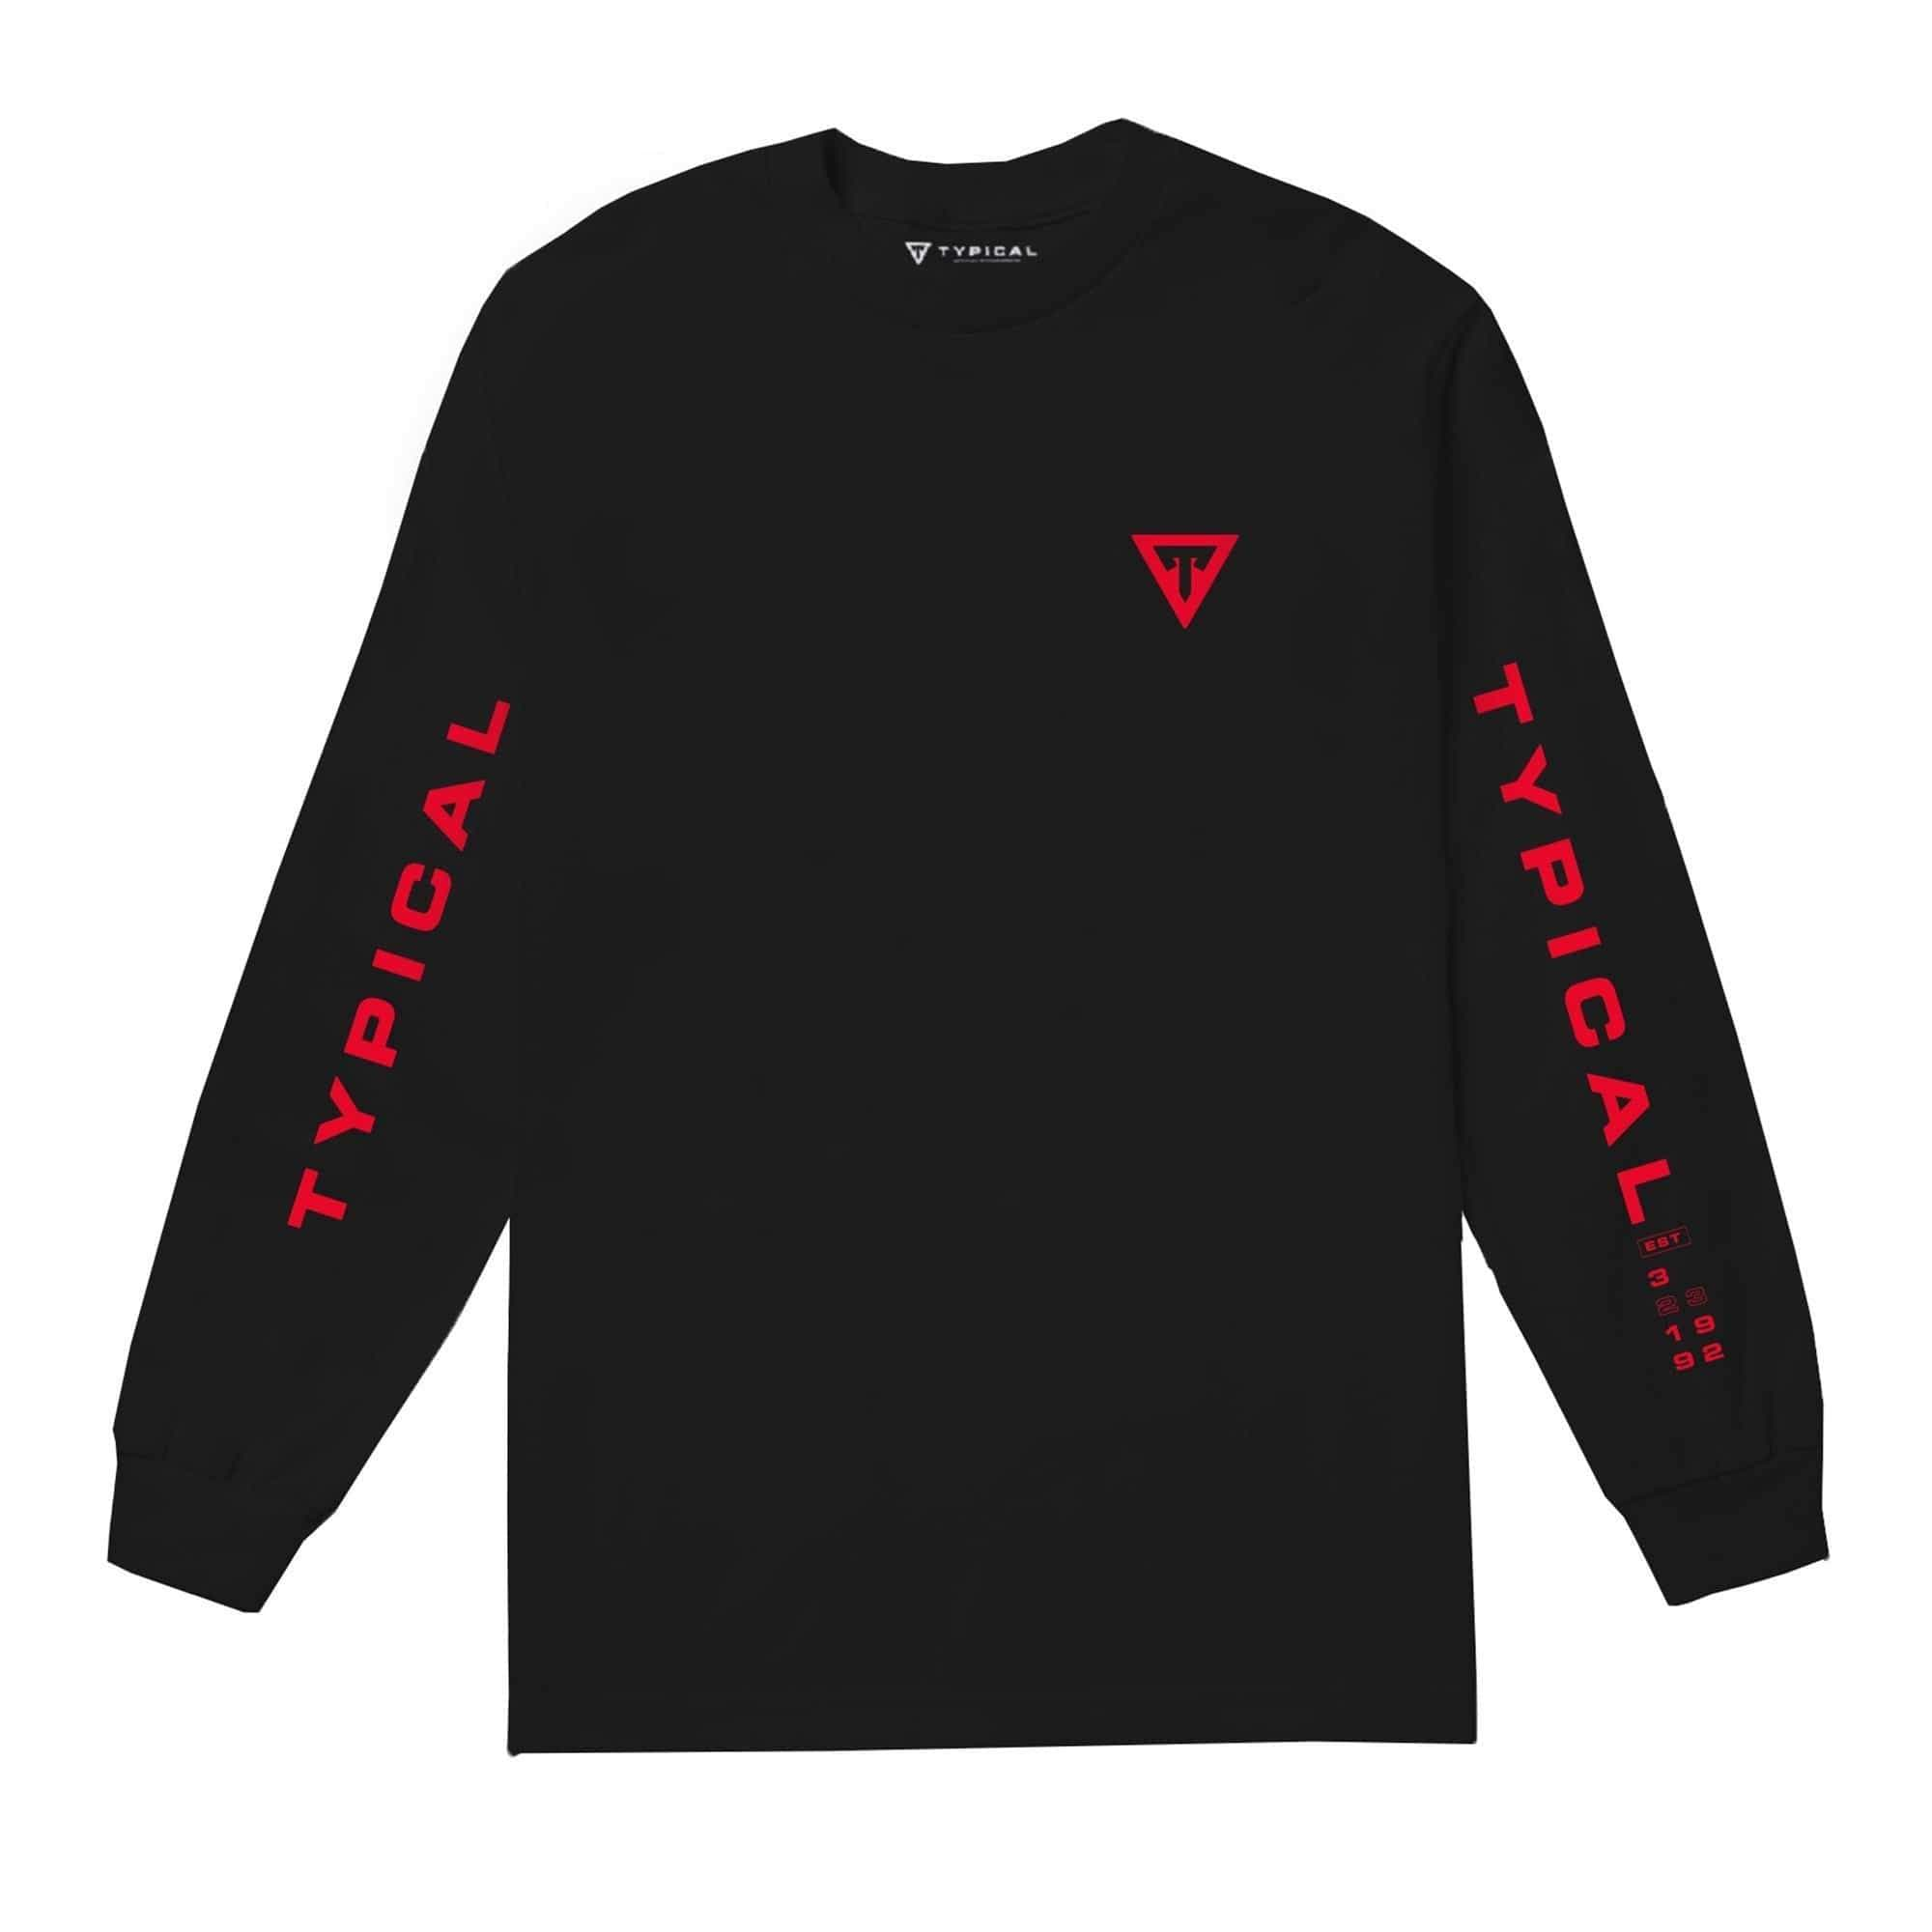 'Redemption' Long Sleeve Tee